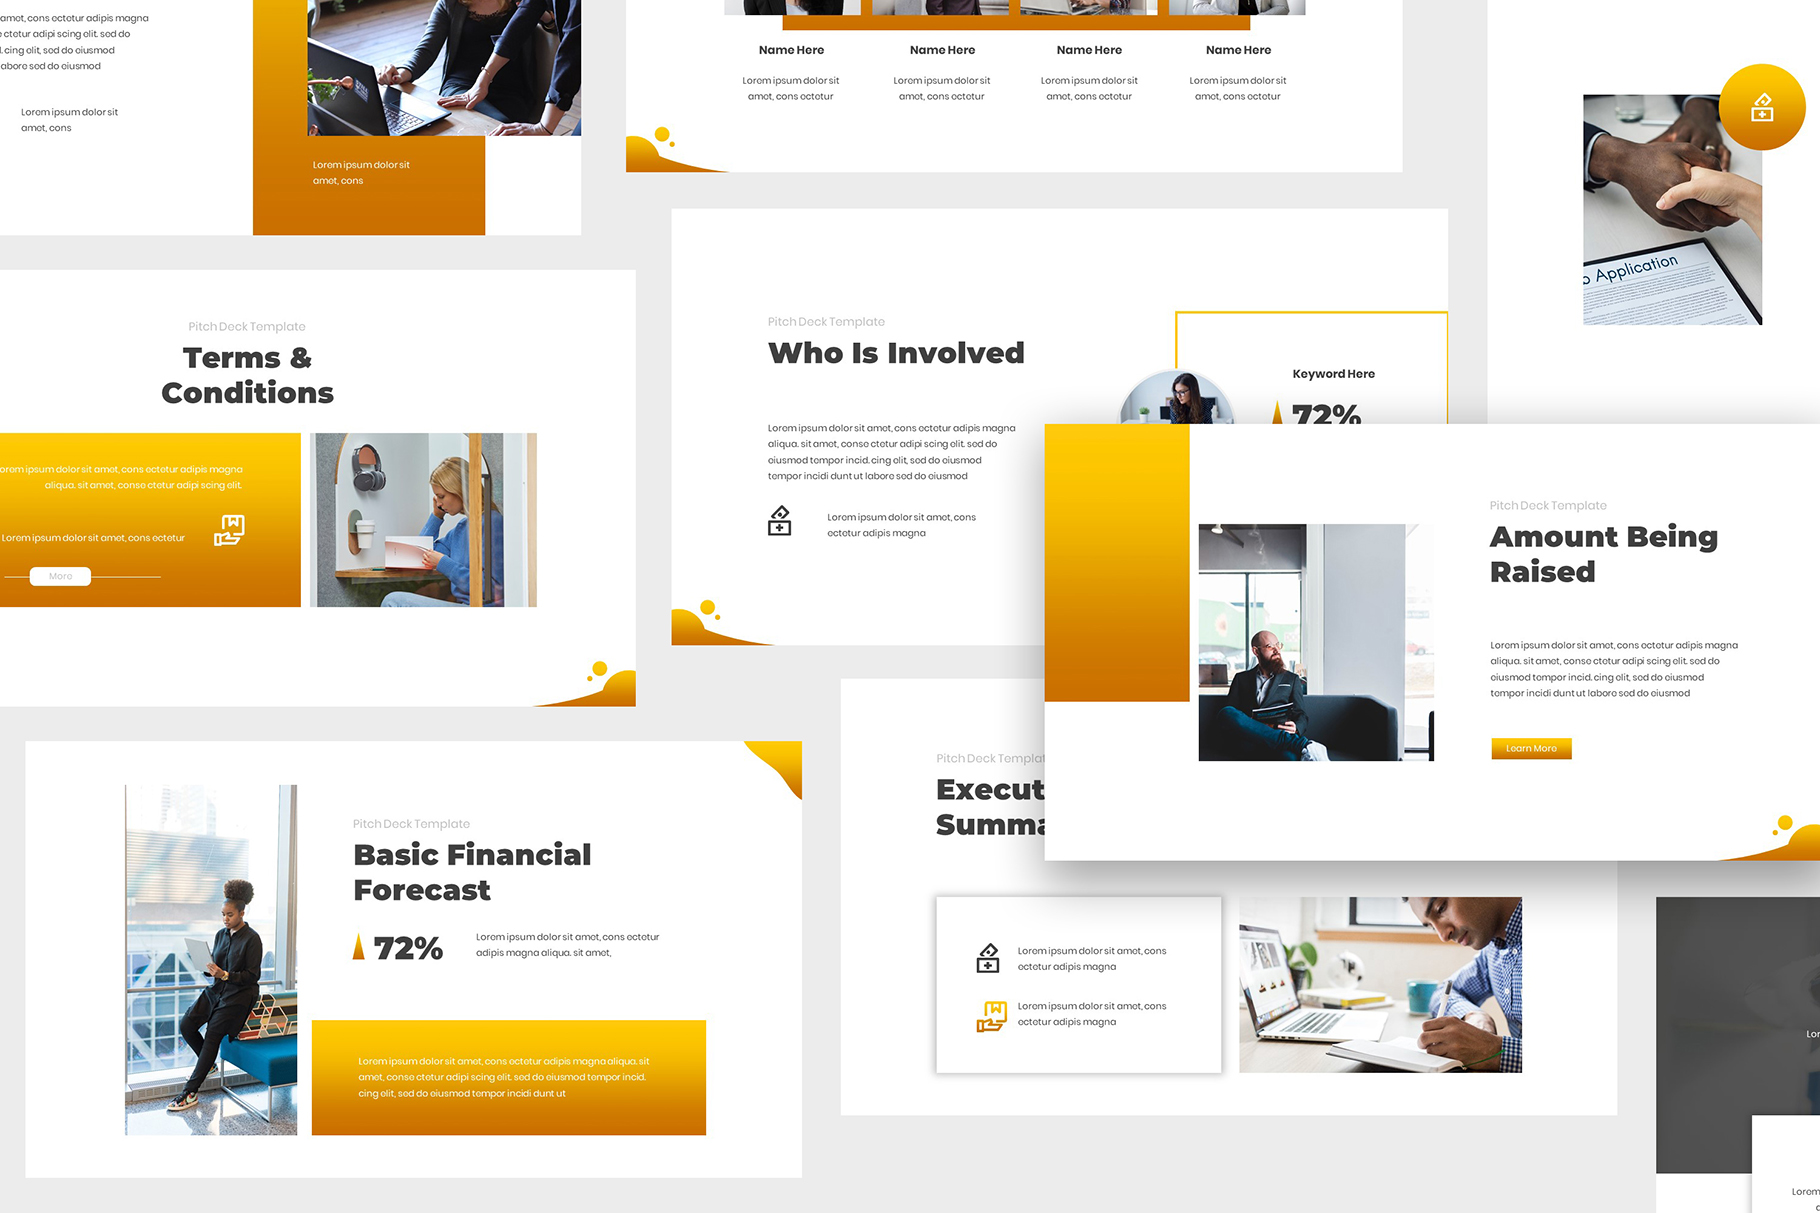 Investment Pitch Deck Google Slides example image 4